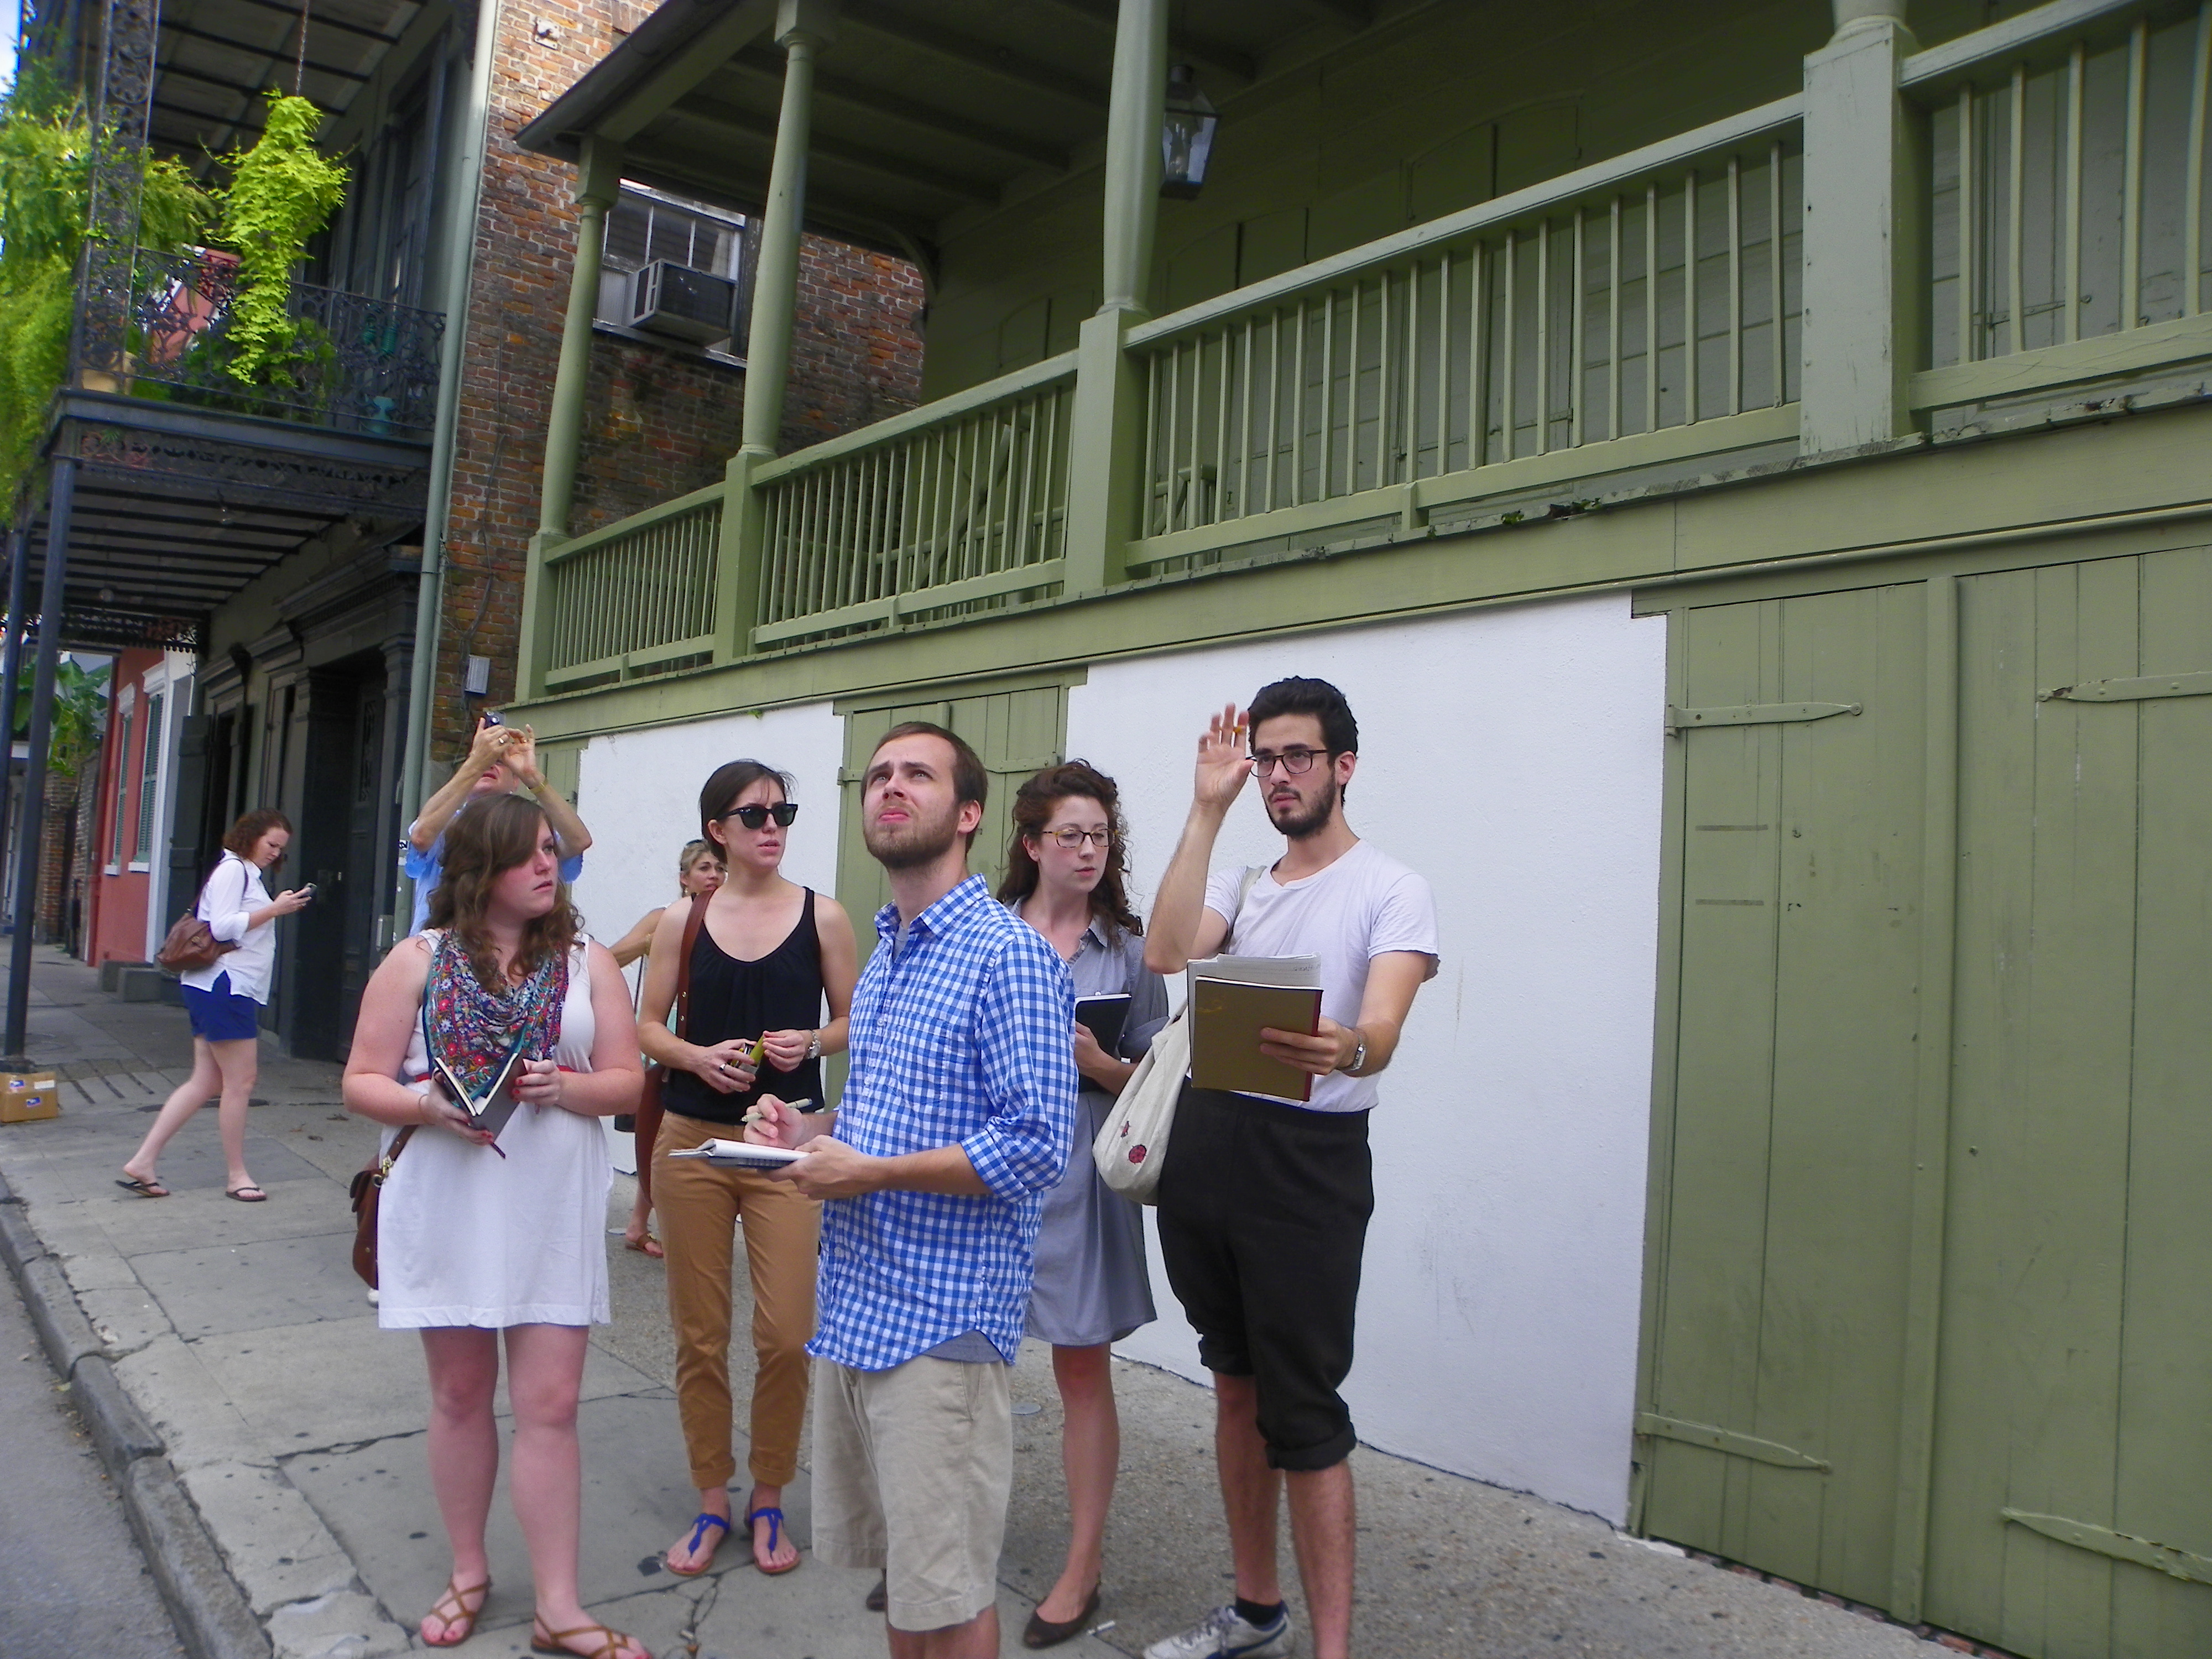 students on sidewalk in French Quarter drawing buildings